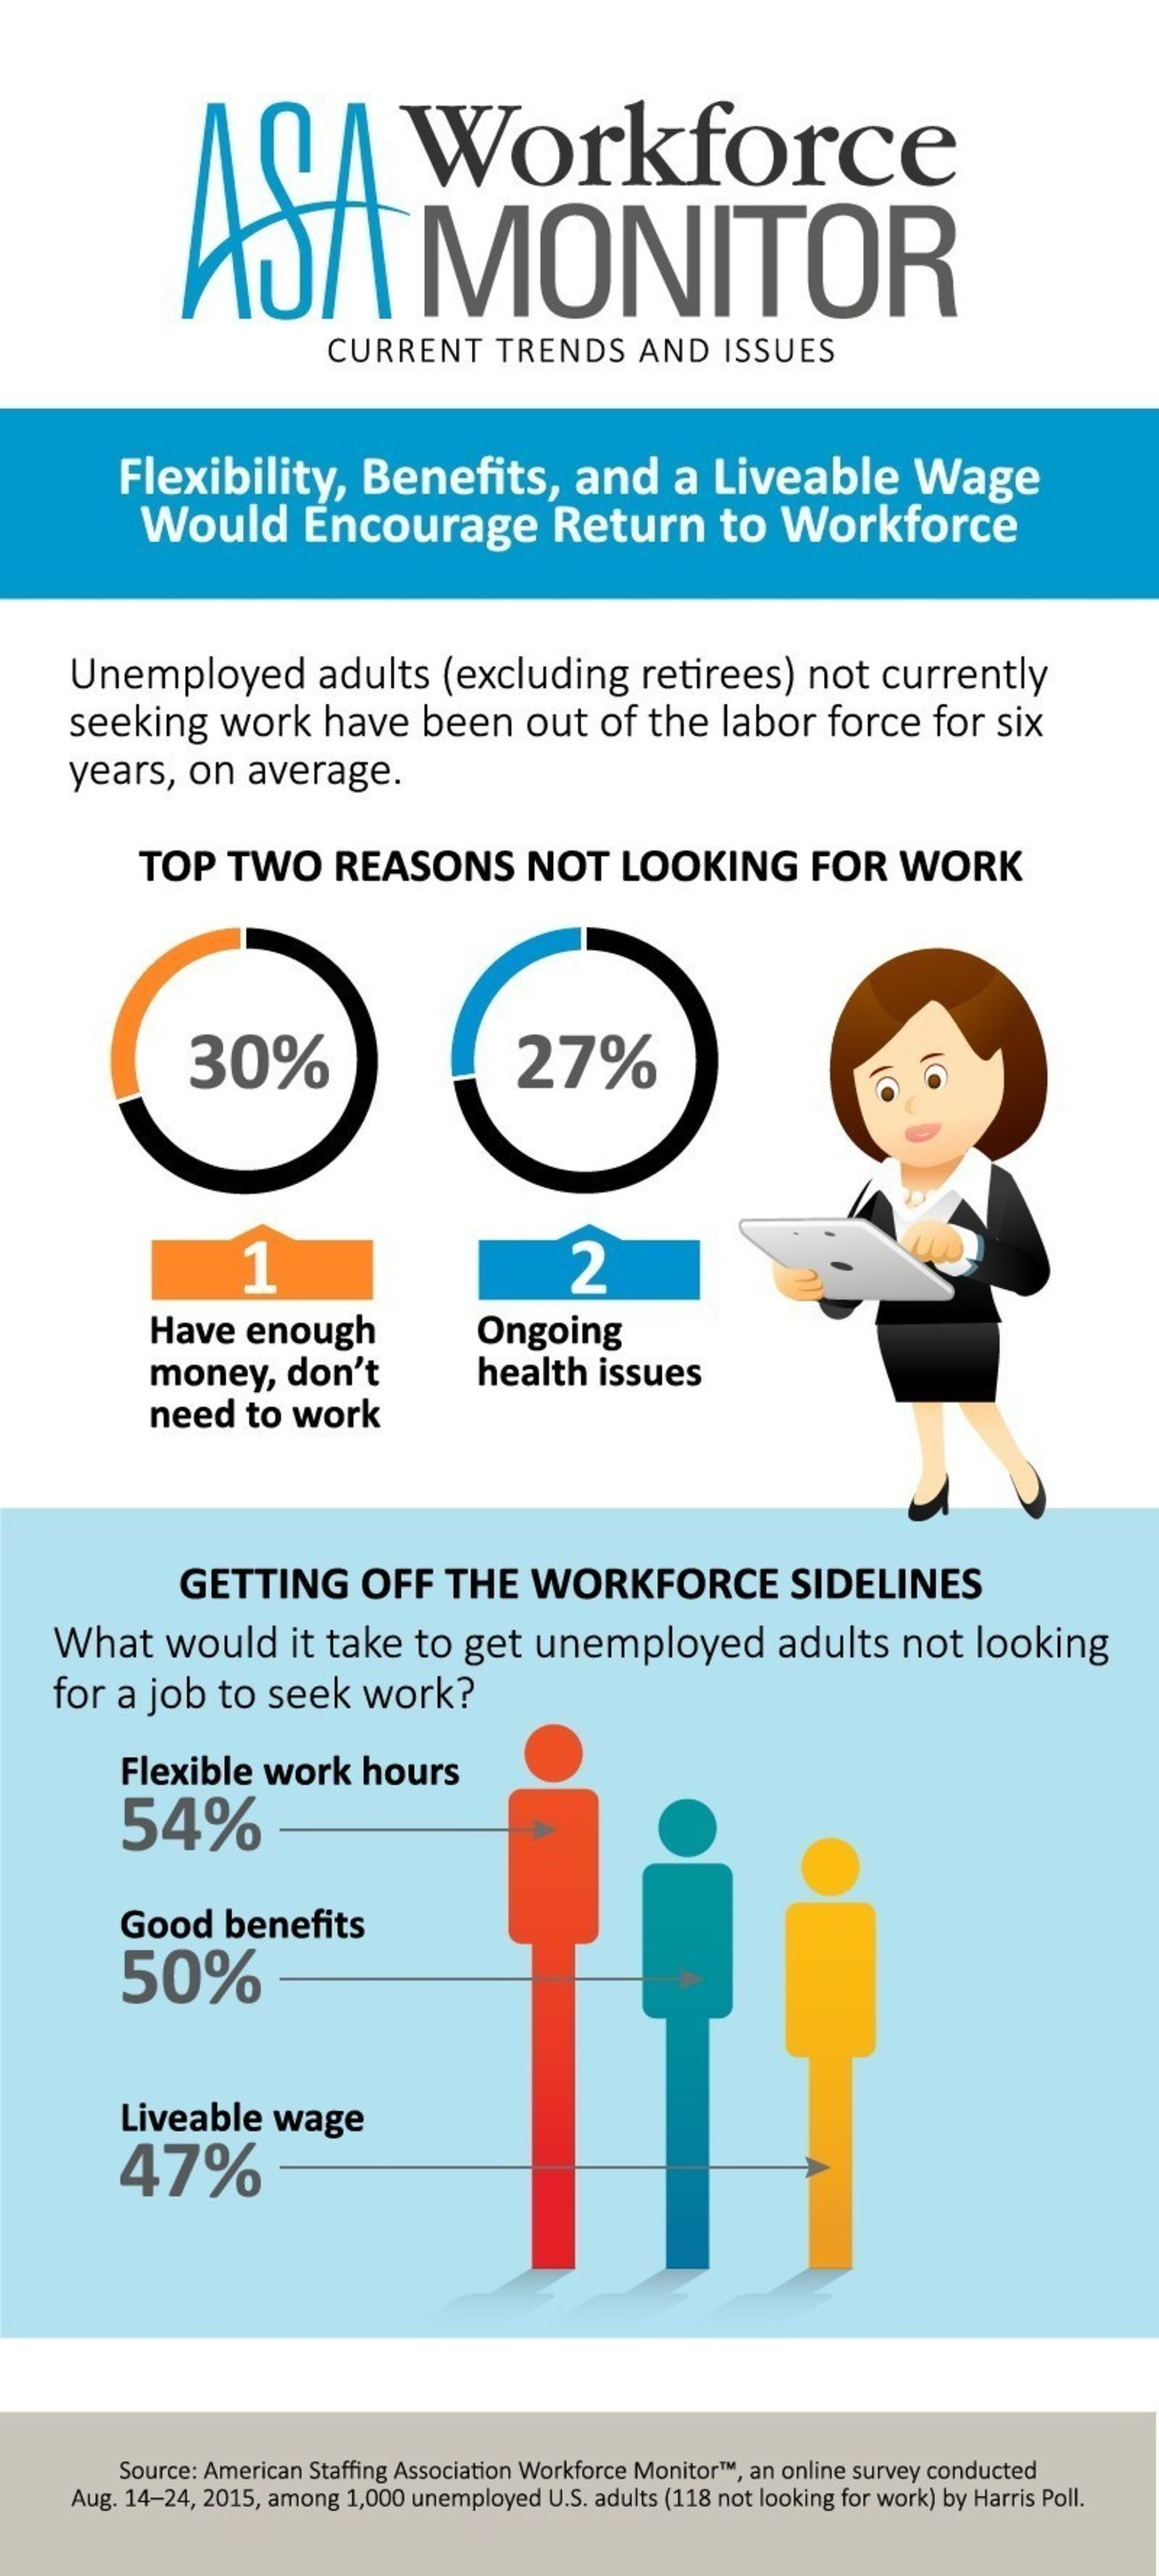 ASA Workforce Monitor: Flexibility, Benefits, and a Liveable Wage Would Encourage Return to Workforce